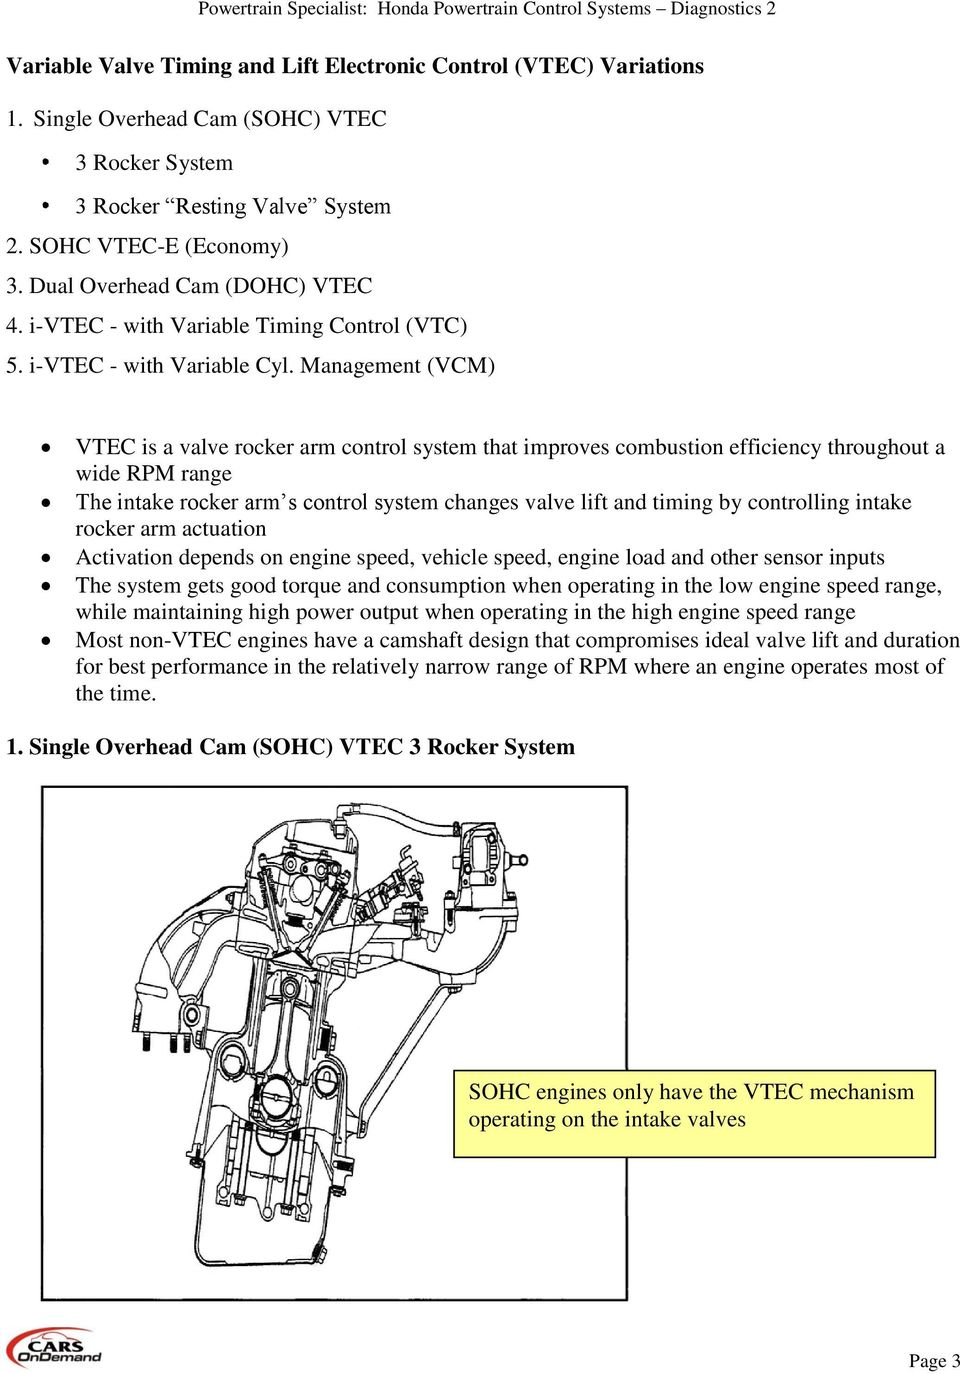 Honda Powertrain Control Systems Diagnostics Pdf 98 Civic Hx Wiring Diagram Egr Management Vcm Vtec Is A Valve Rocker Arm System That Improves Combustion Efficiency